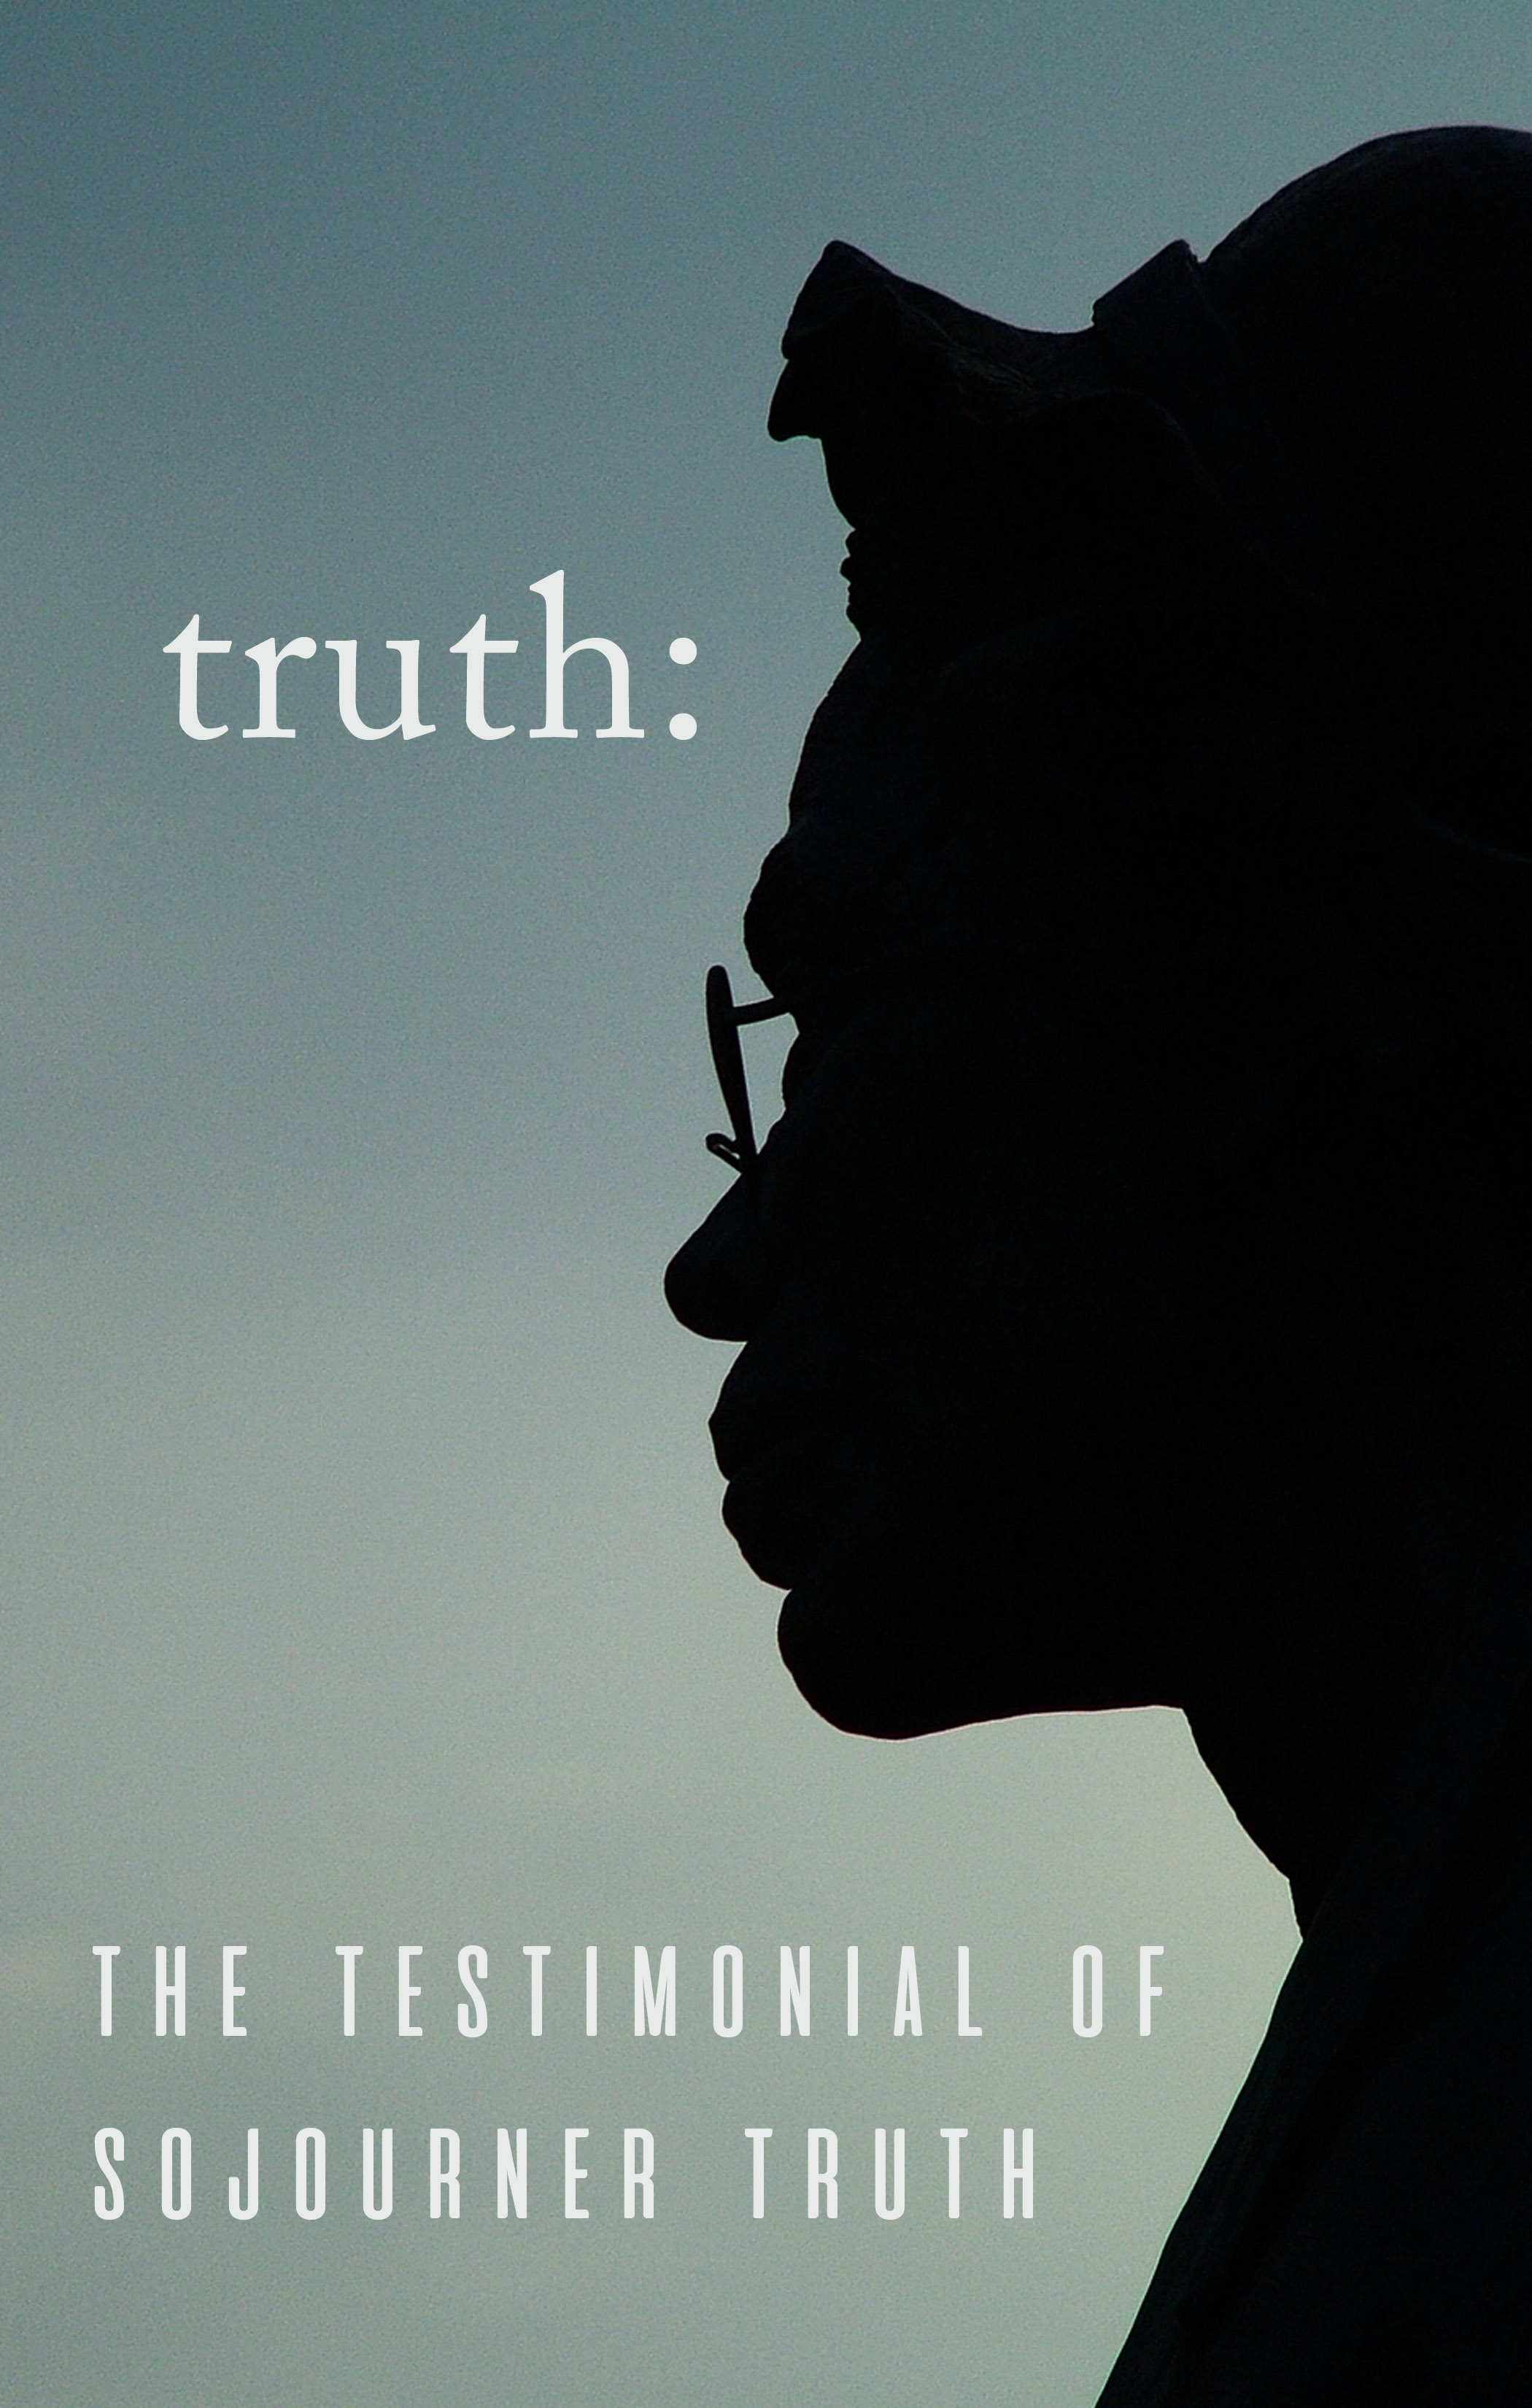 HSRT will present truth: The Testimonial of Sojourner Truth